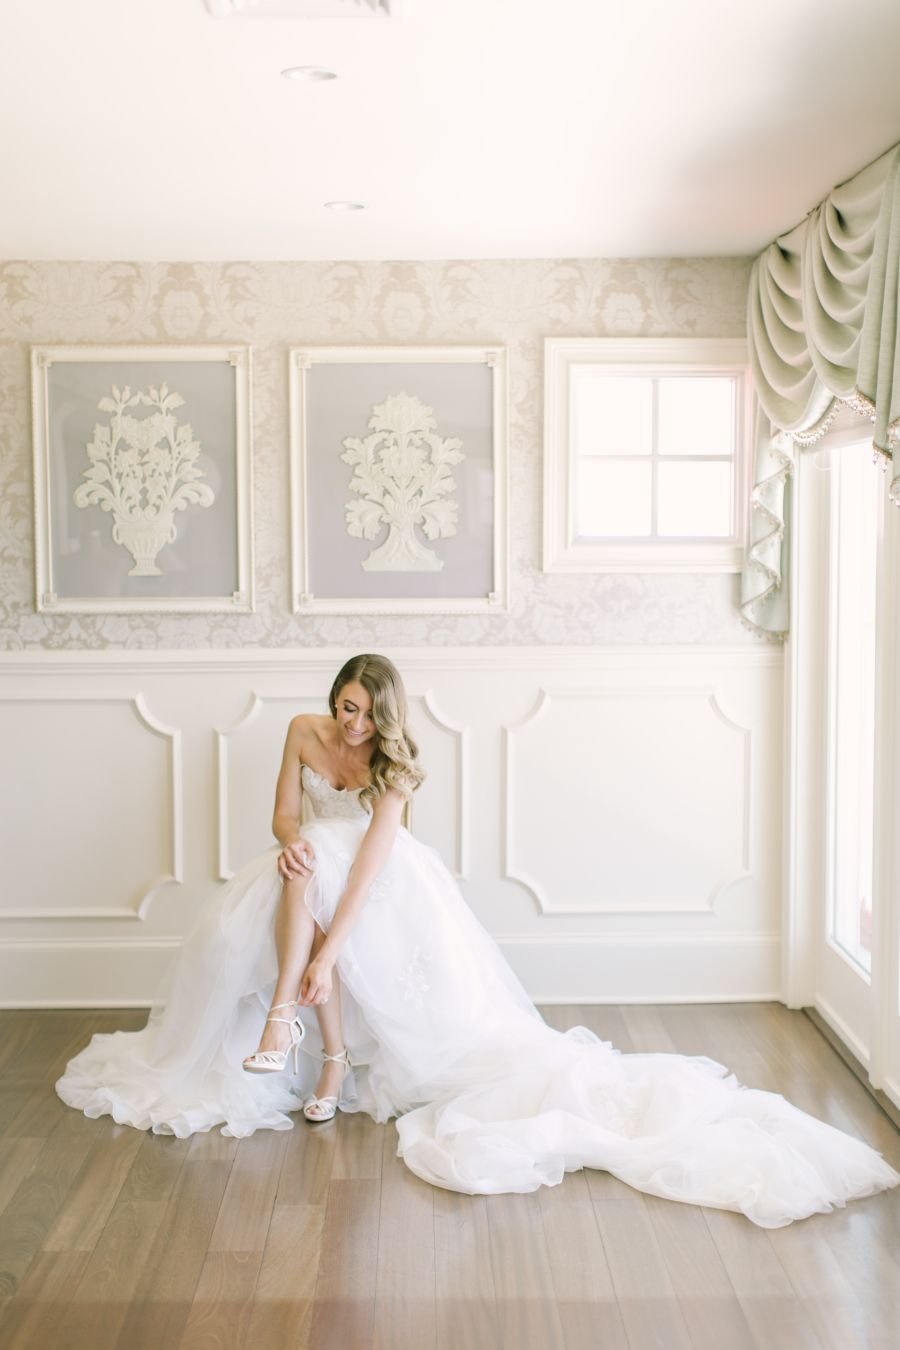 SMP Blogger Bride \'Dressed by Jess\' Wedding Reveal Part II | Mark ...